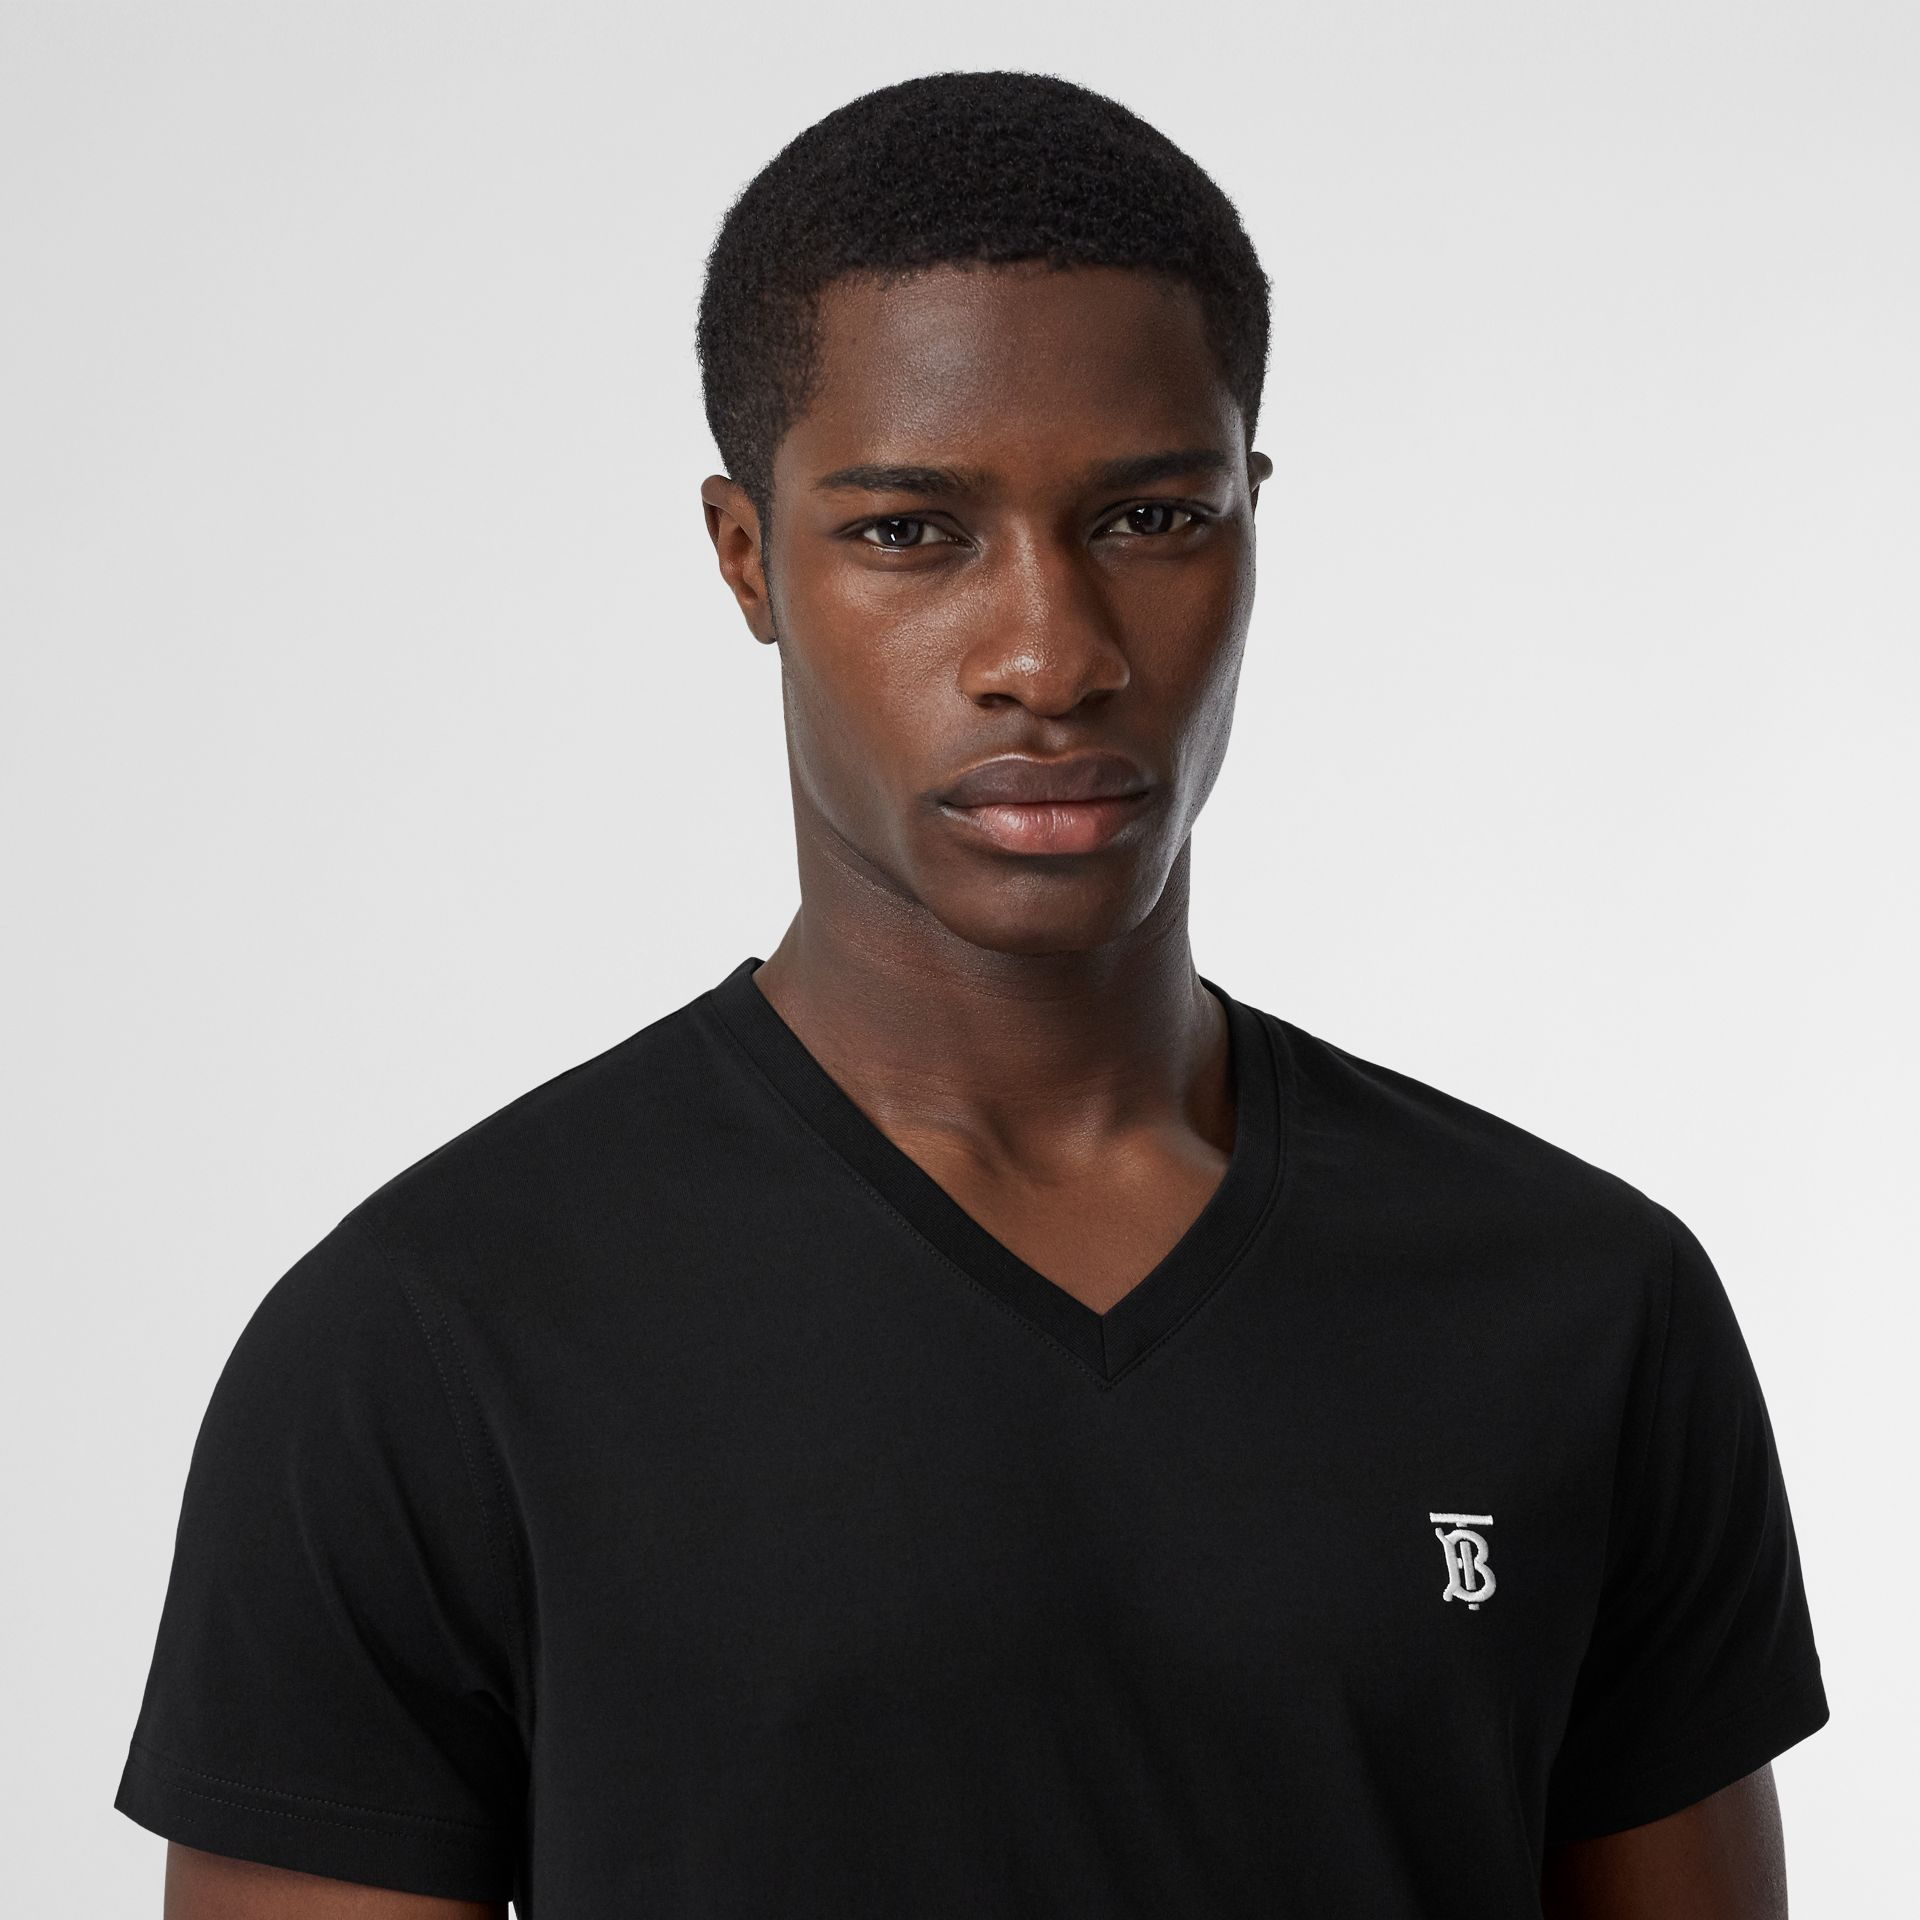 Monogram Motif Cotton V-neck T-shirt in Black - Men | Burberry Australia - gallery image 1